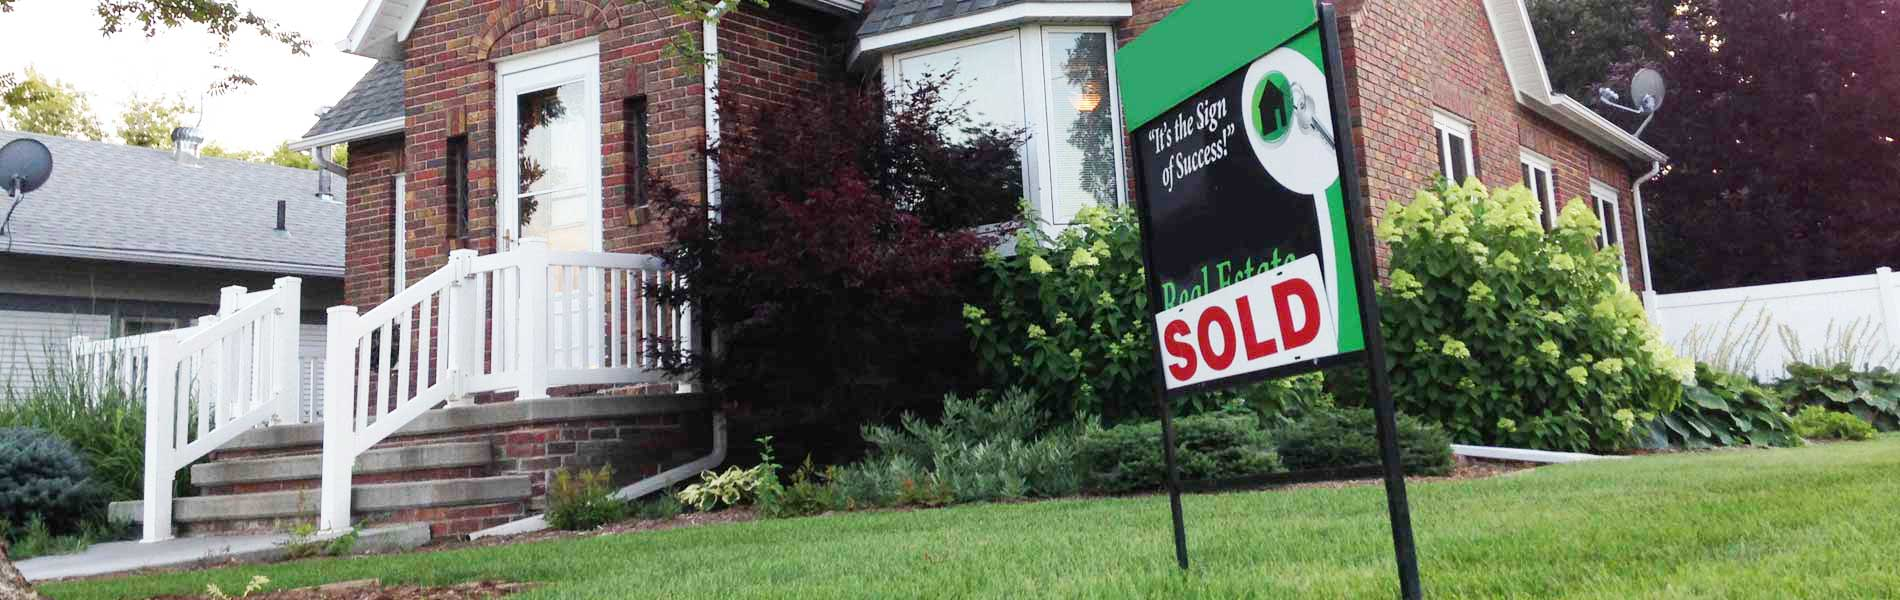 Advantages and Benefits of Fannie Mae-Backed Loans in Kansas City